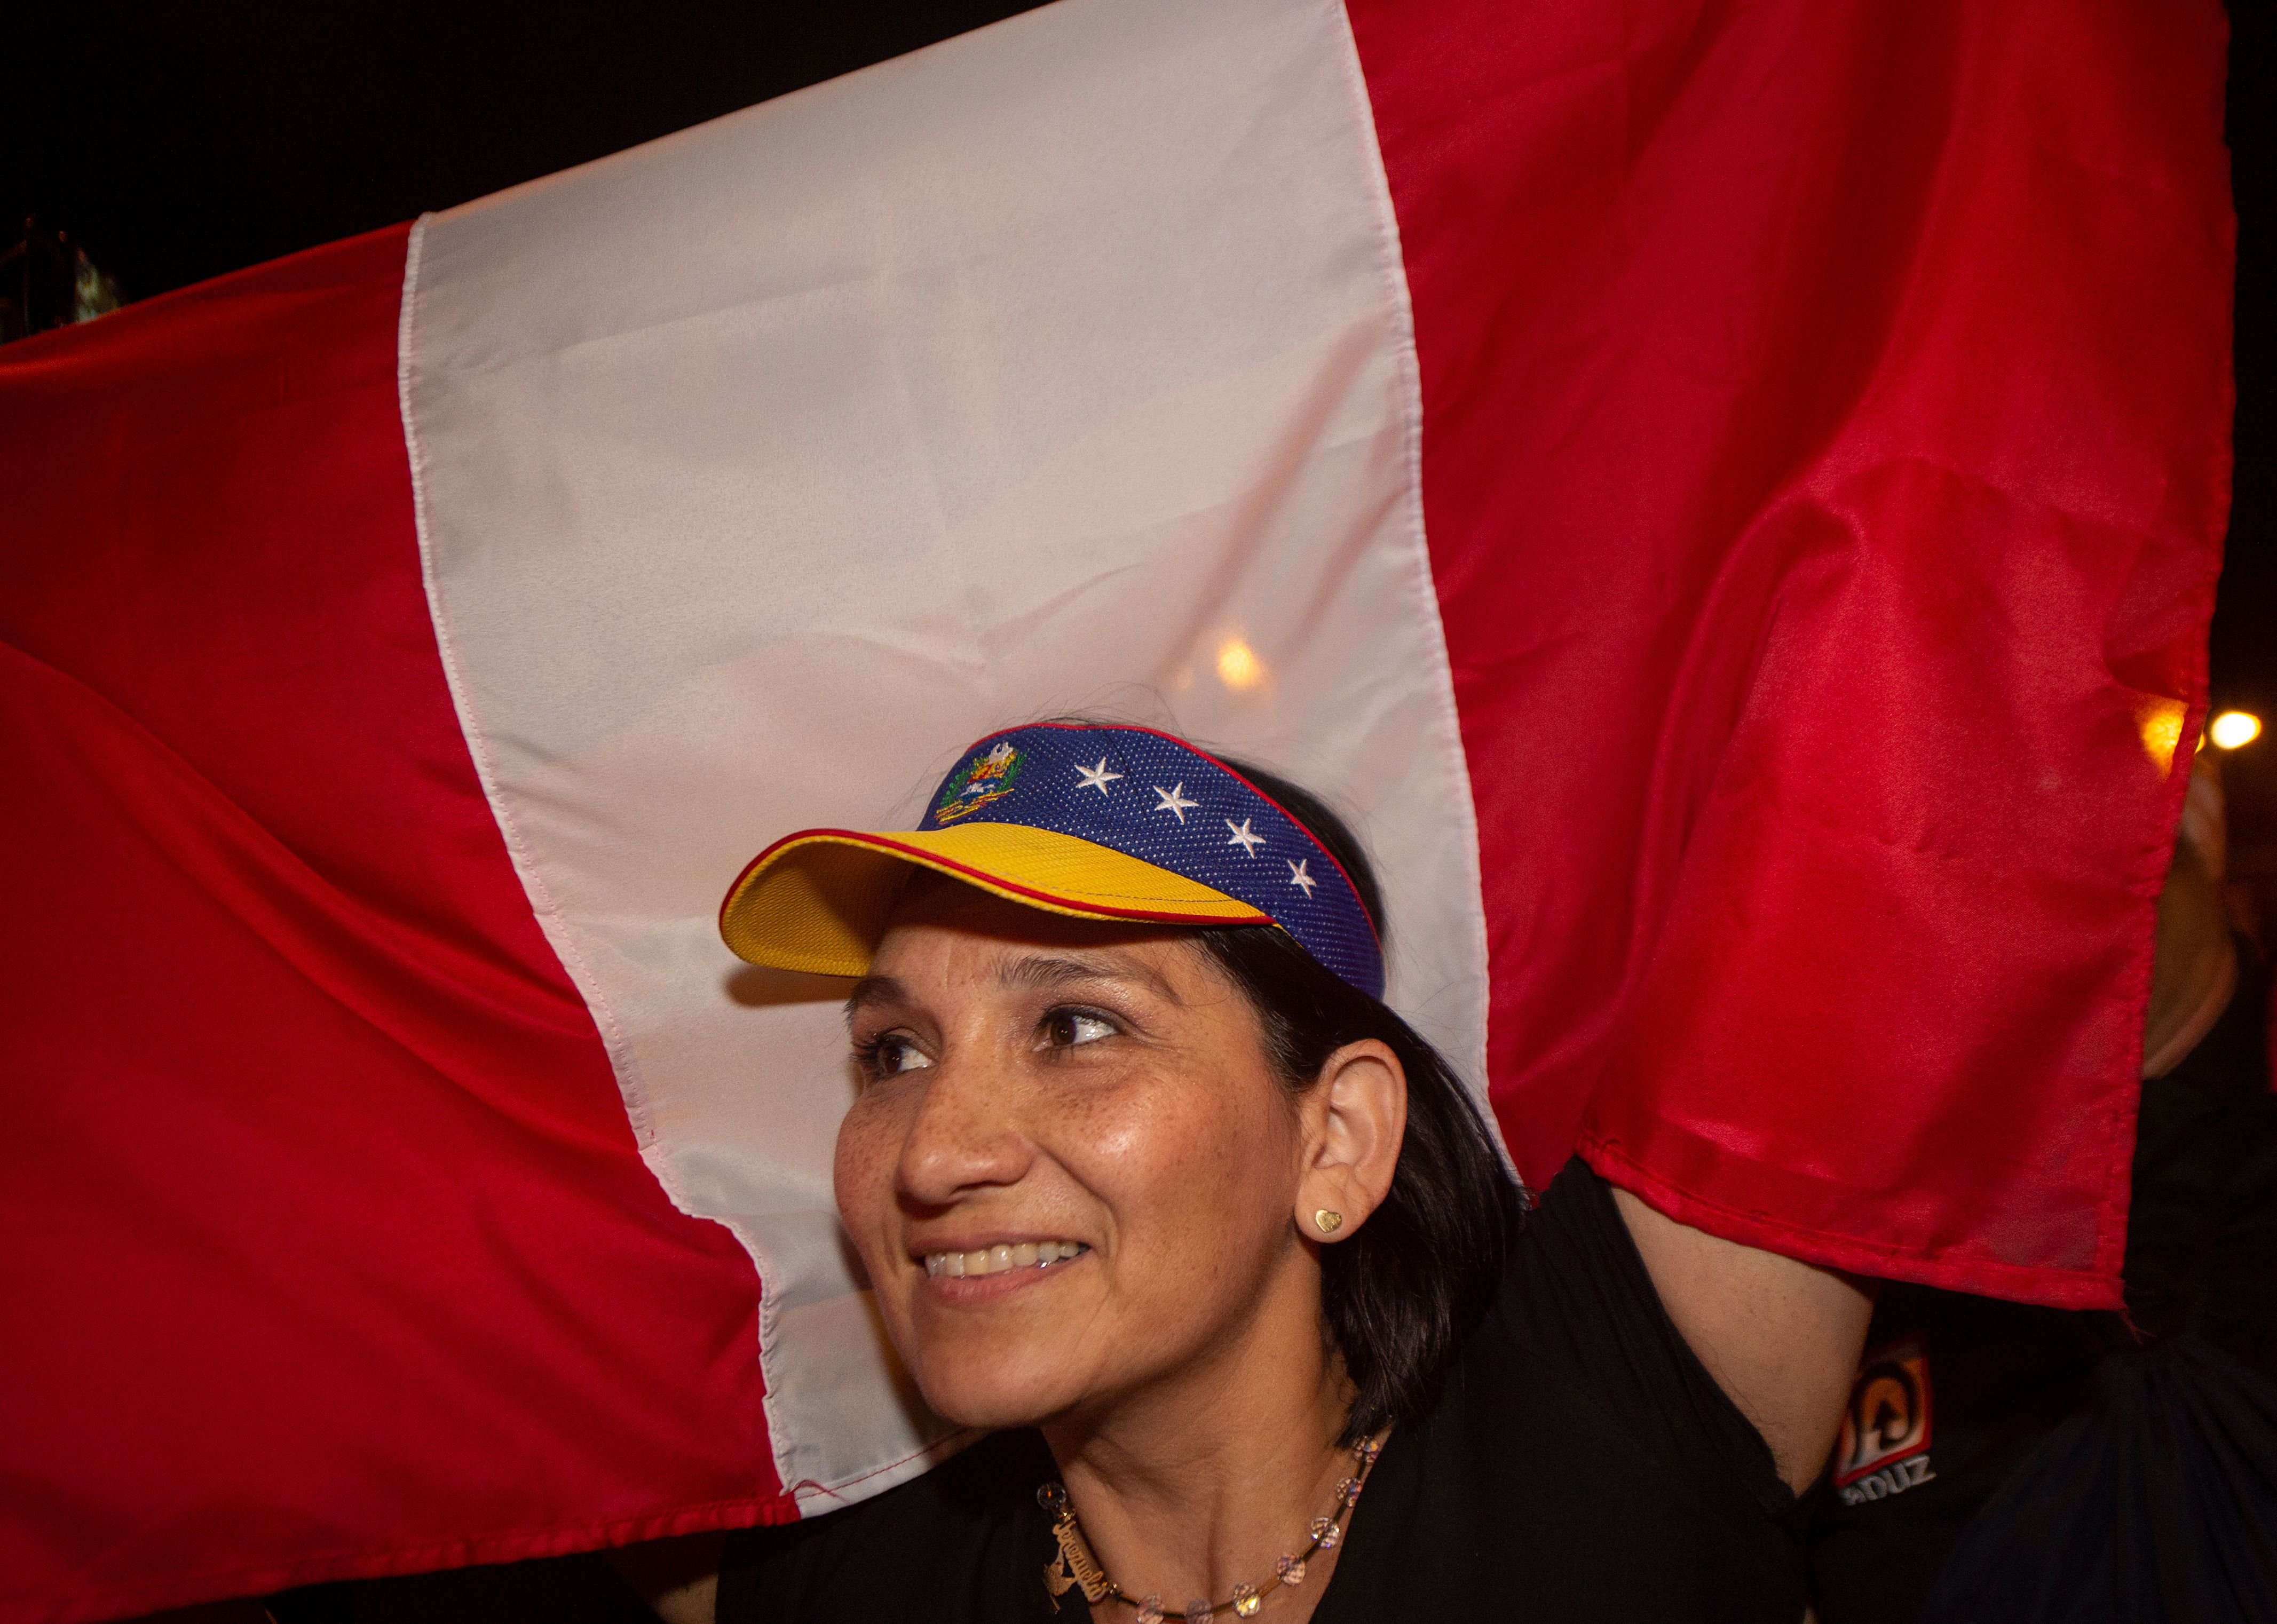 A Venezuelan woman waves a Peruvian flag at a protest against the government of President Maduro in Lima